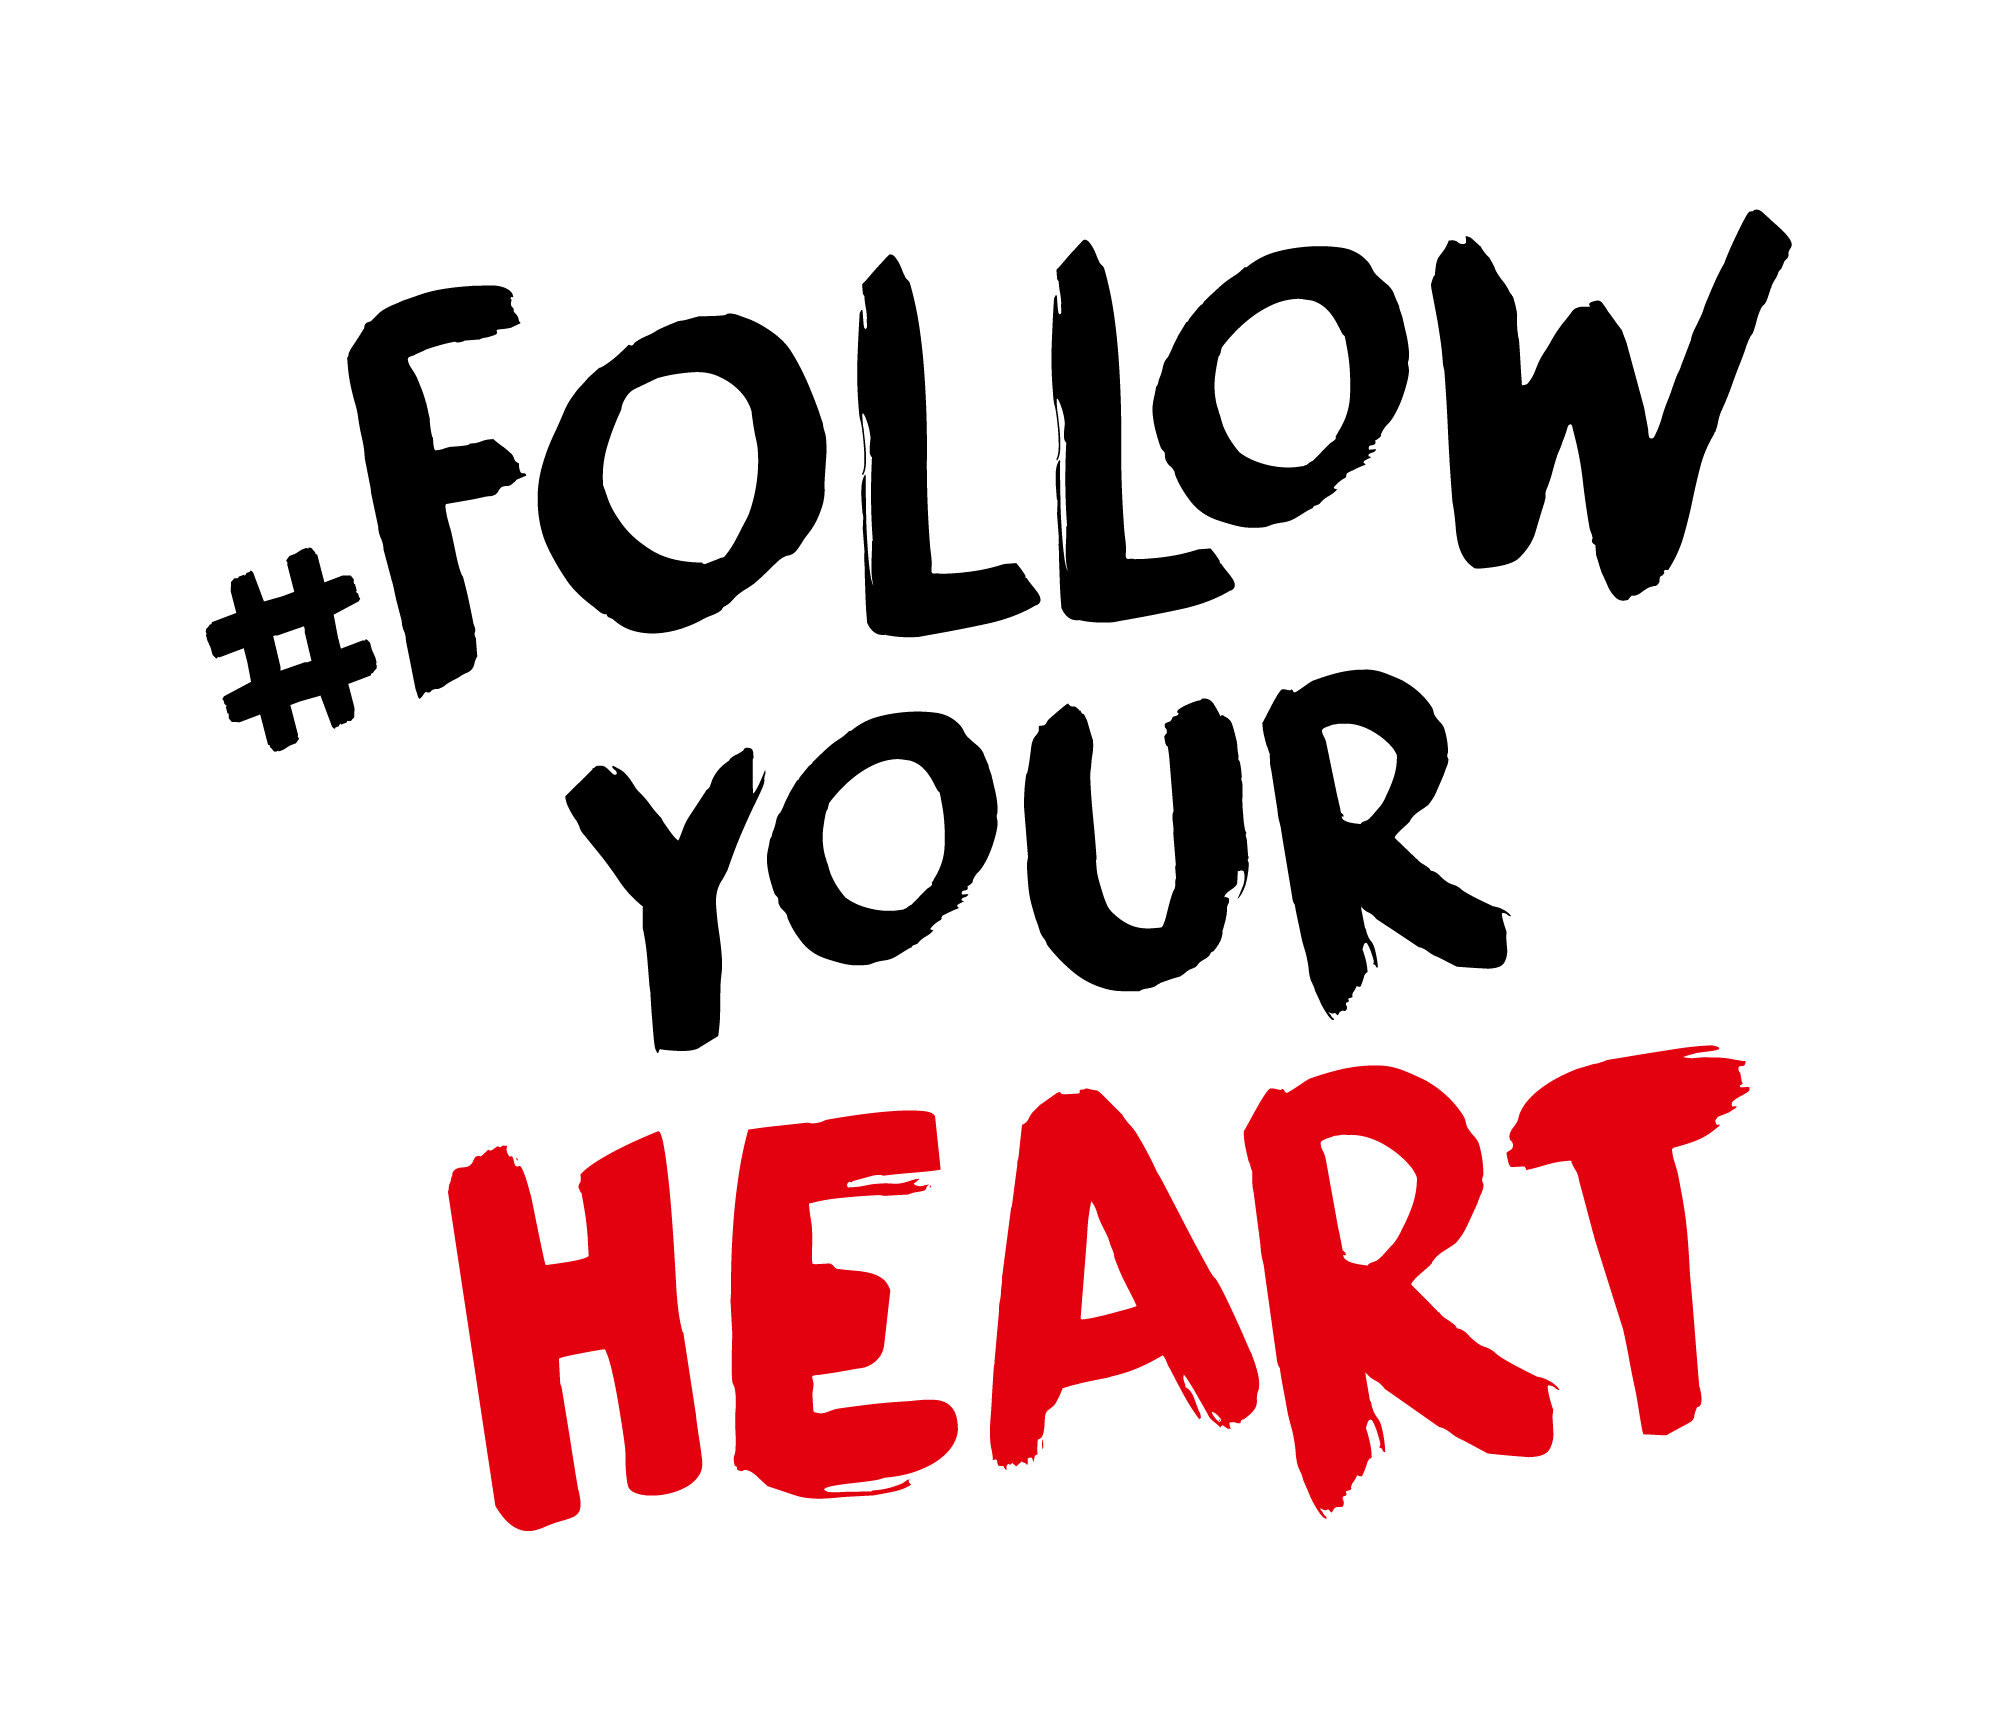 Follow your heart Signet positiv 1